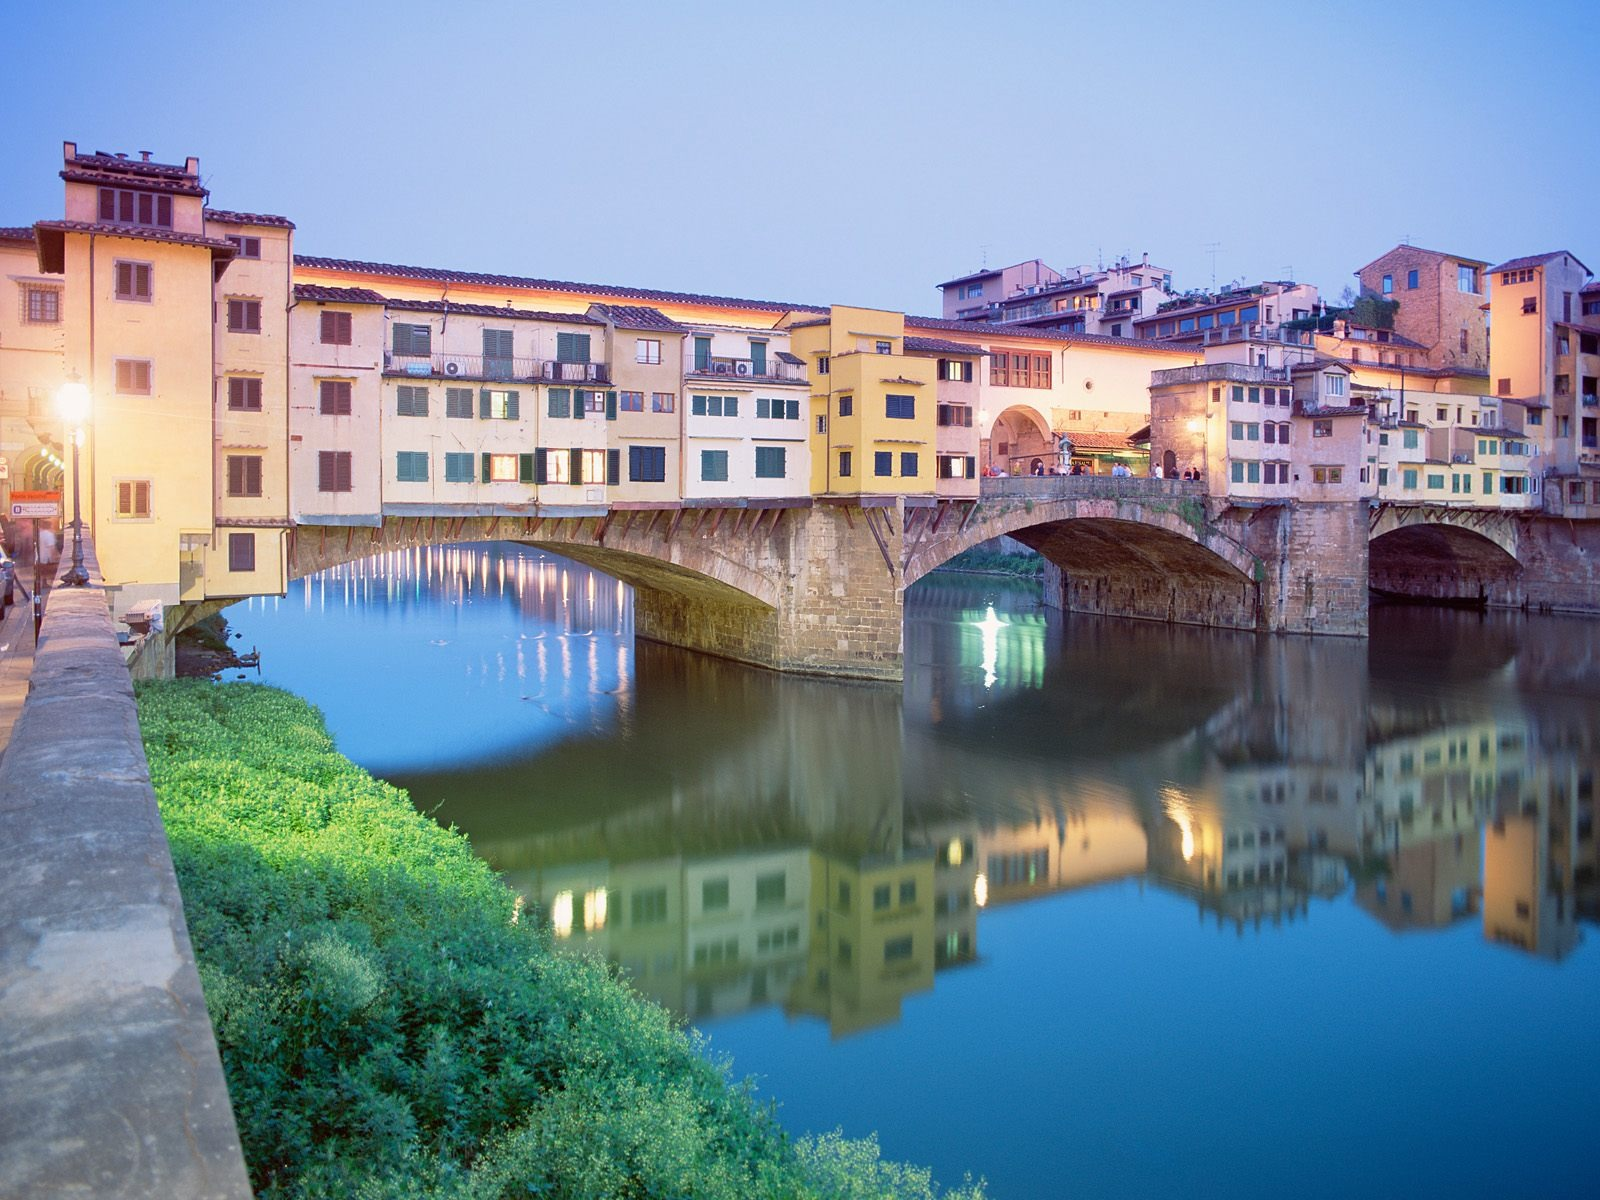 http://play.trombi.it/images/ponte_vecchio.jpg